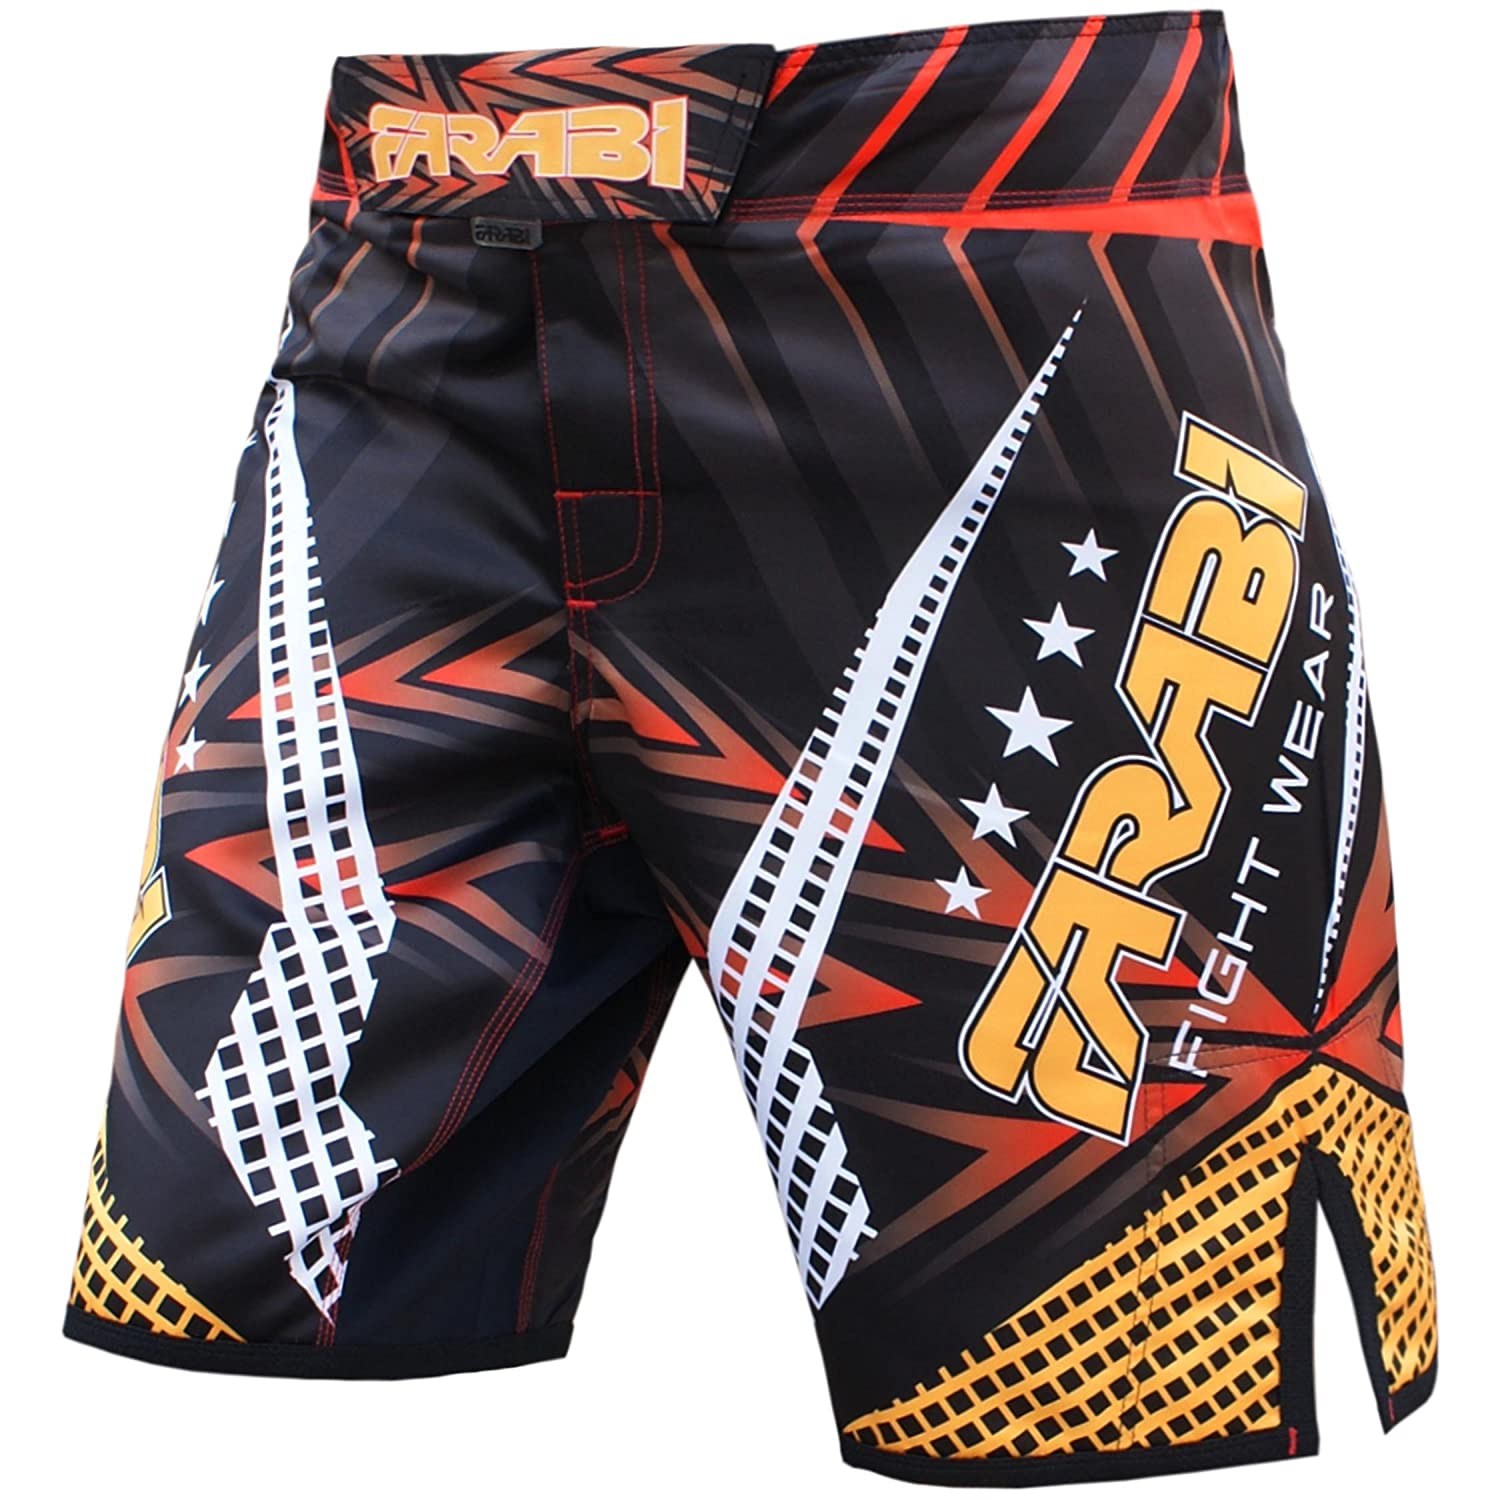 MMA Shorts Compitiion Training Cage Fight Kick Boxing Muay Thai Pant, Size Guideline in Pictures Area Farabi Sports